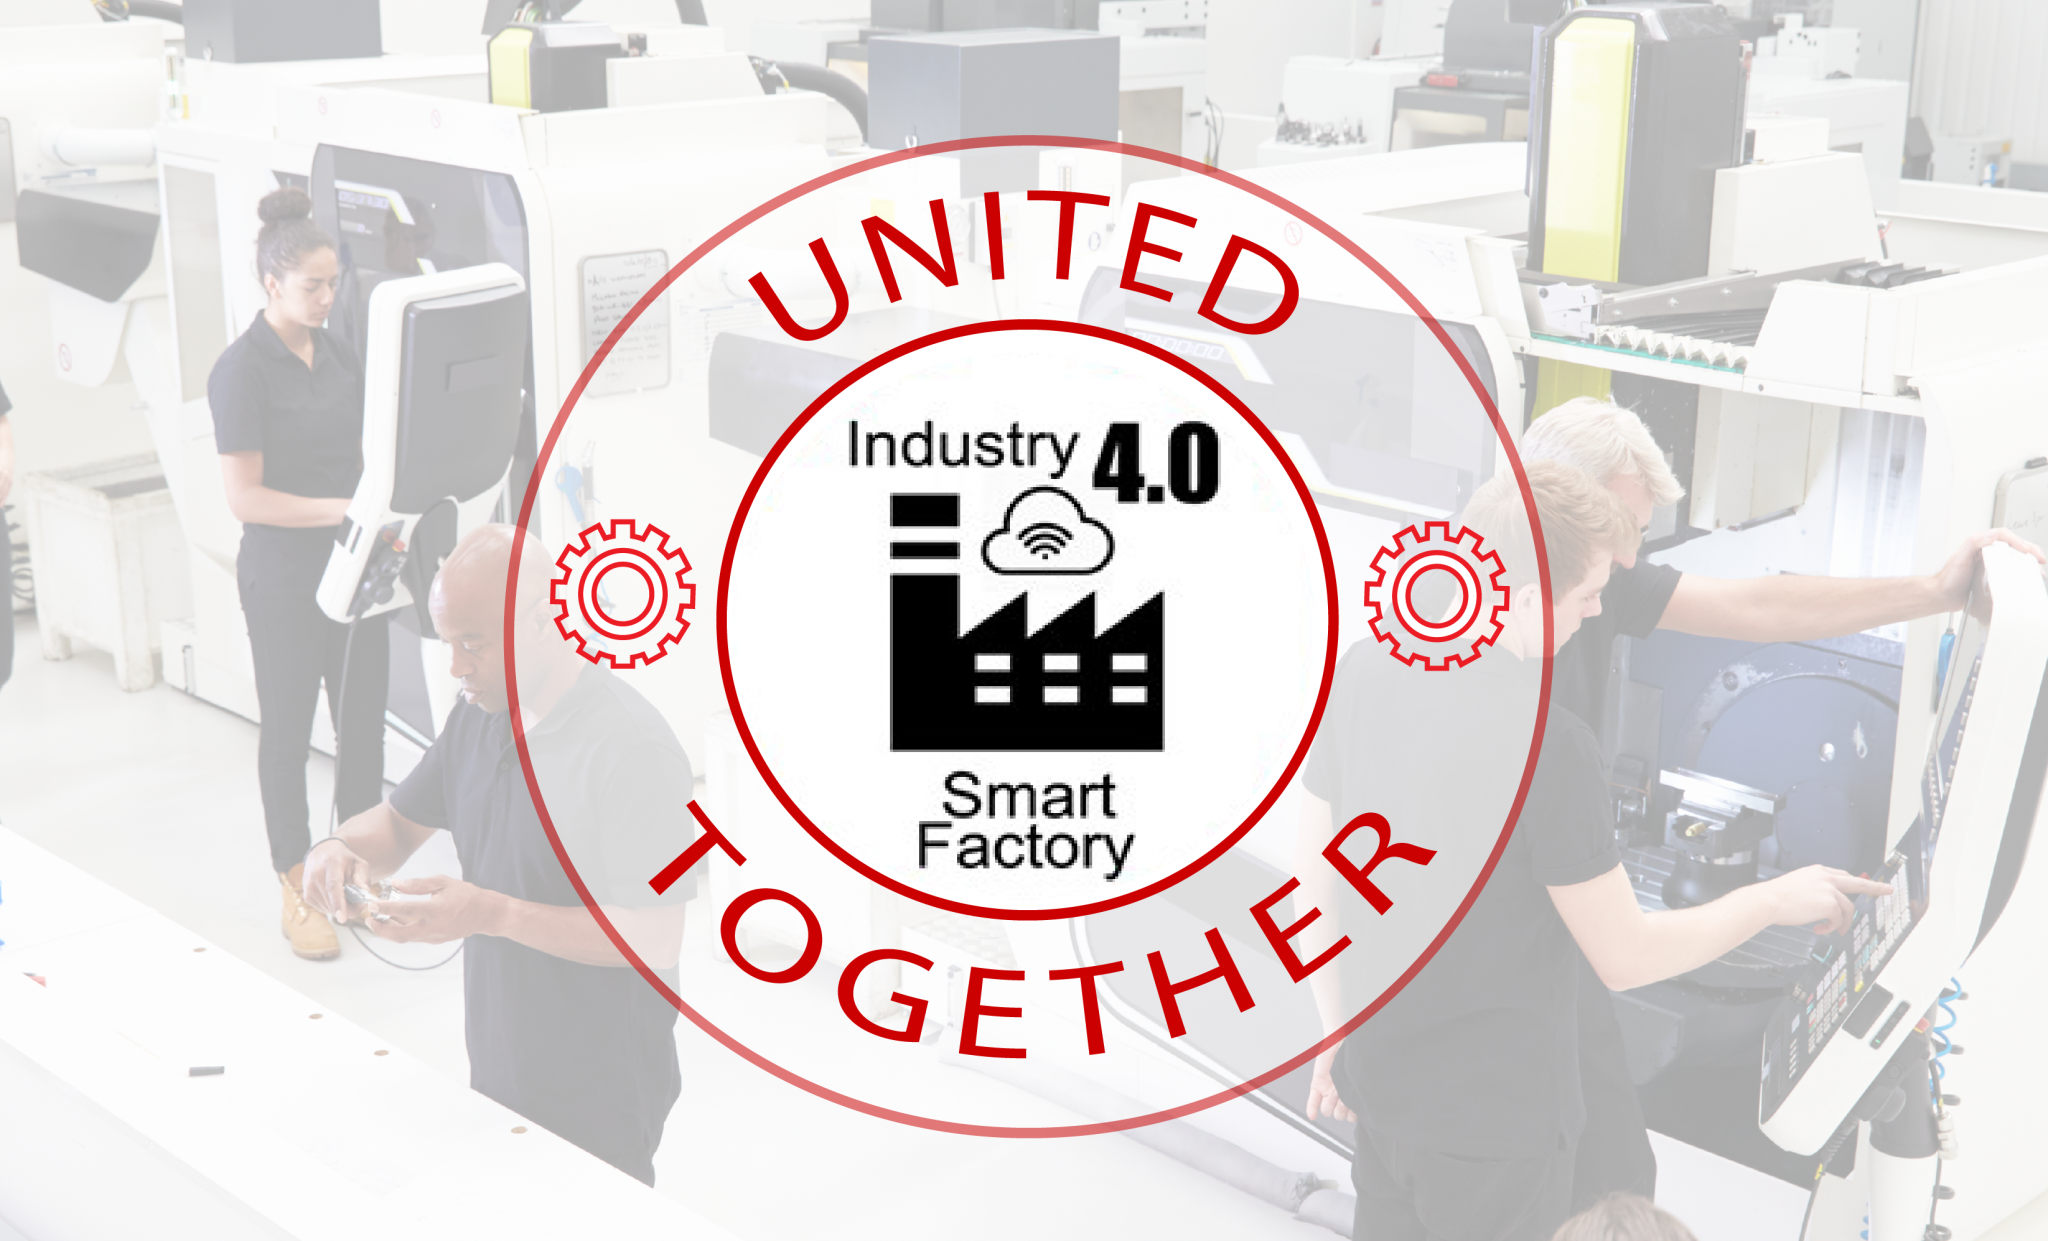 We're Here to Support a Healthy Factory and Workforce in 2020 and Beyond